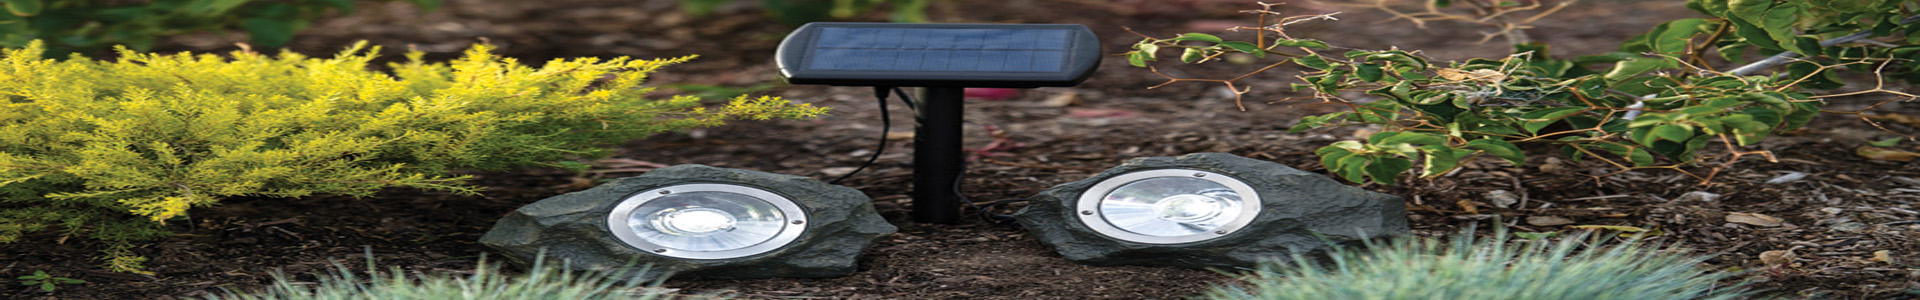 solar rock lights set of 4